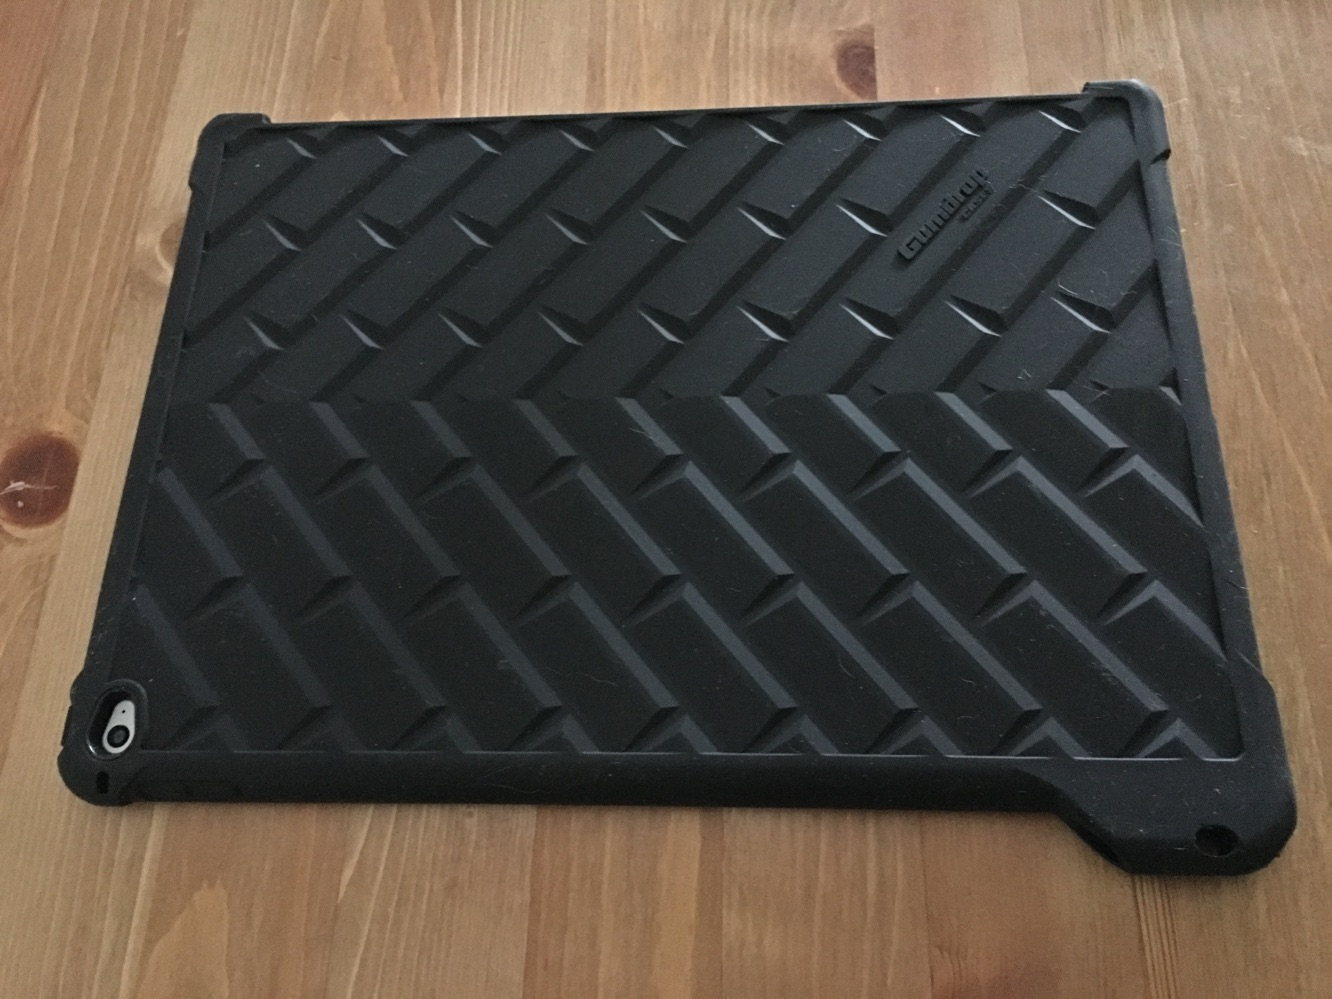 Review: DODOcase Multi-Angle Case for iPad Pro